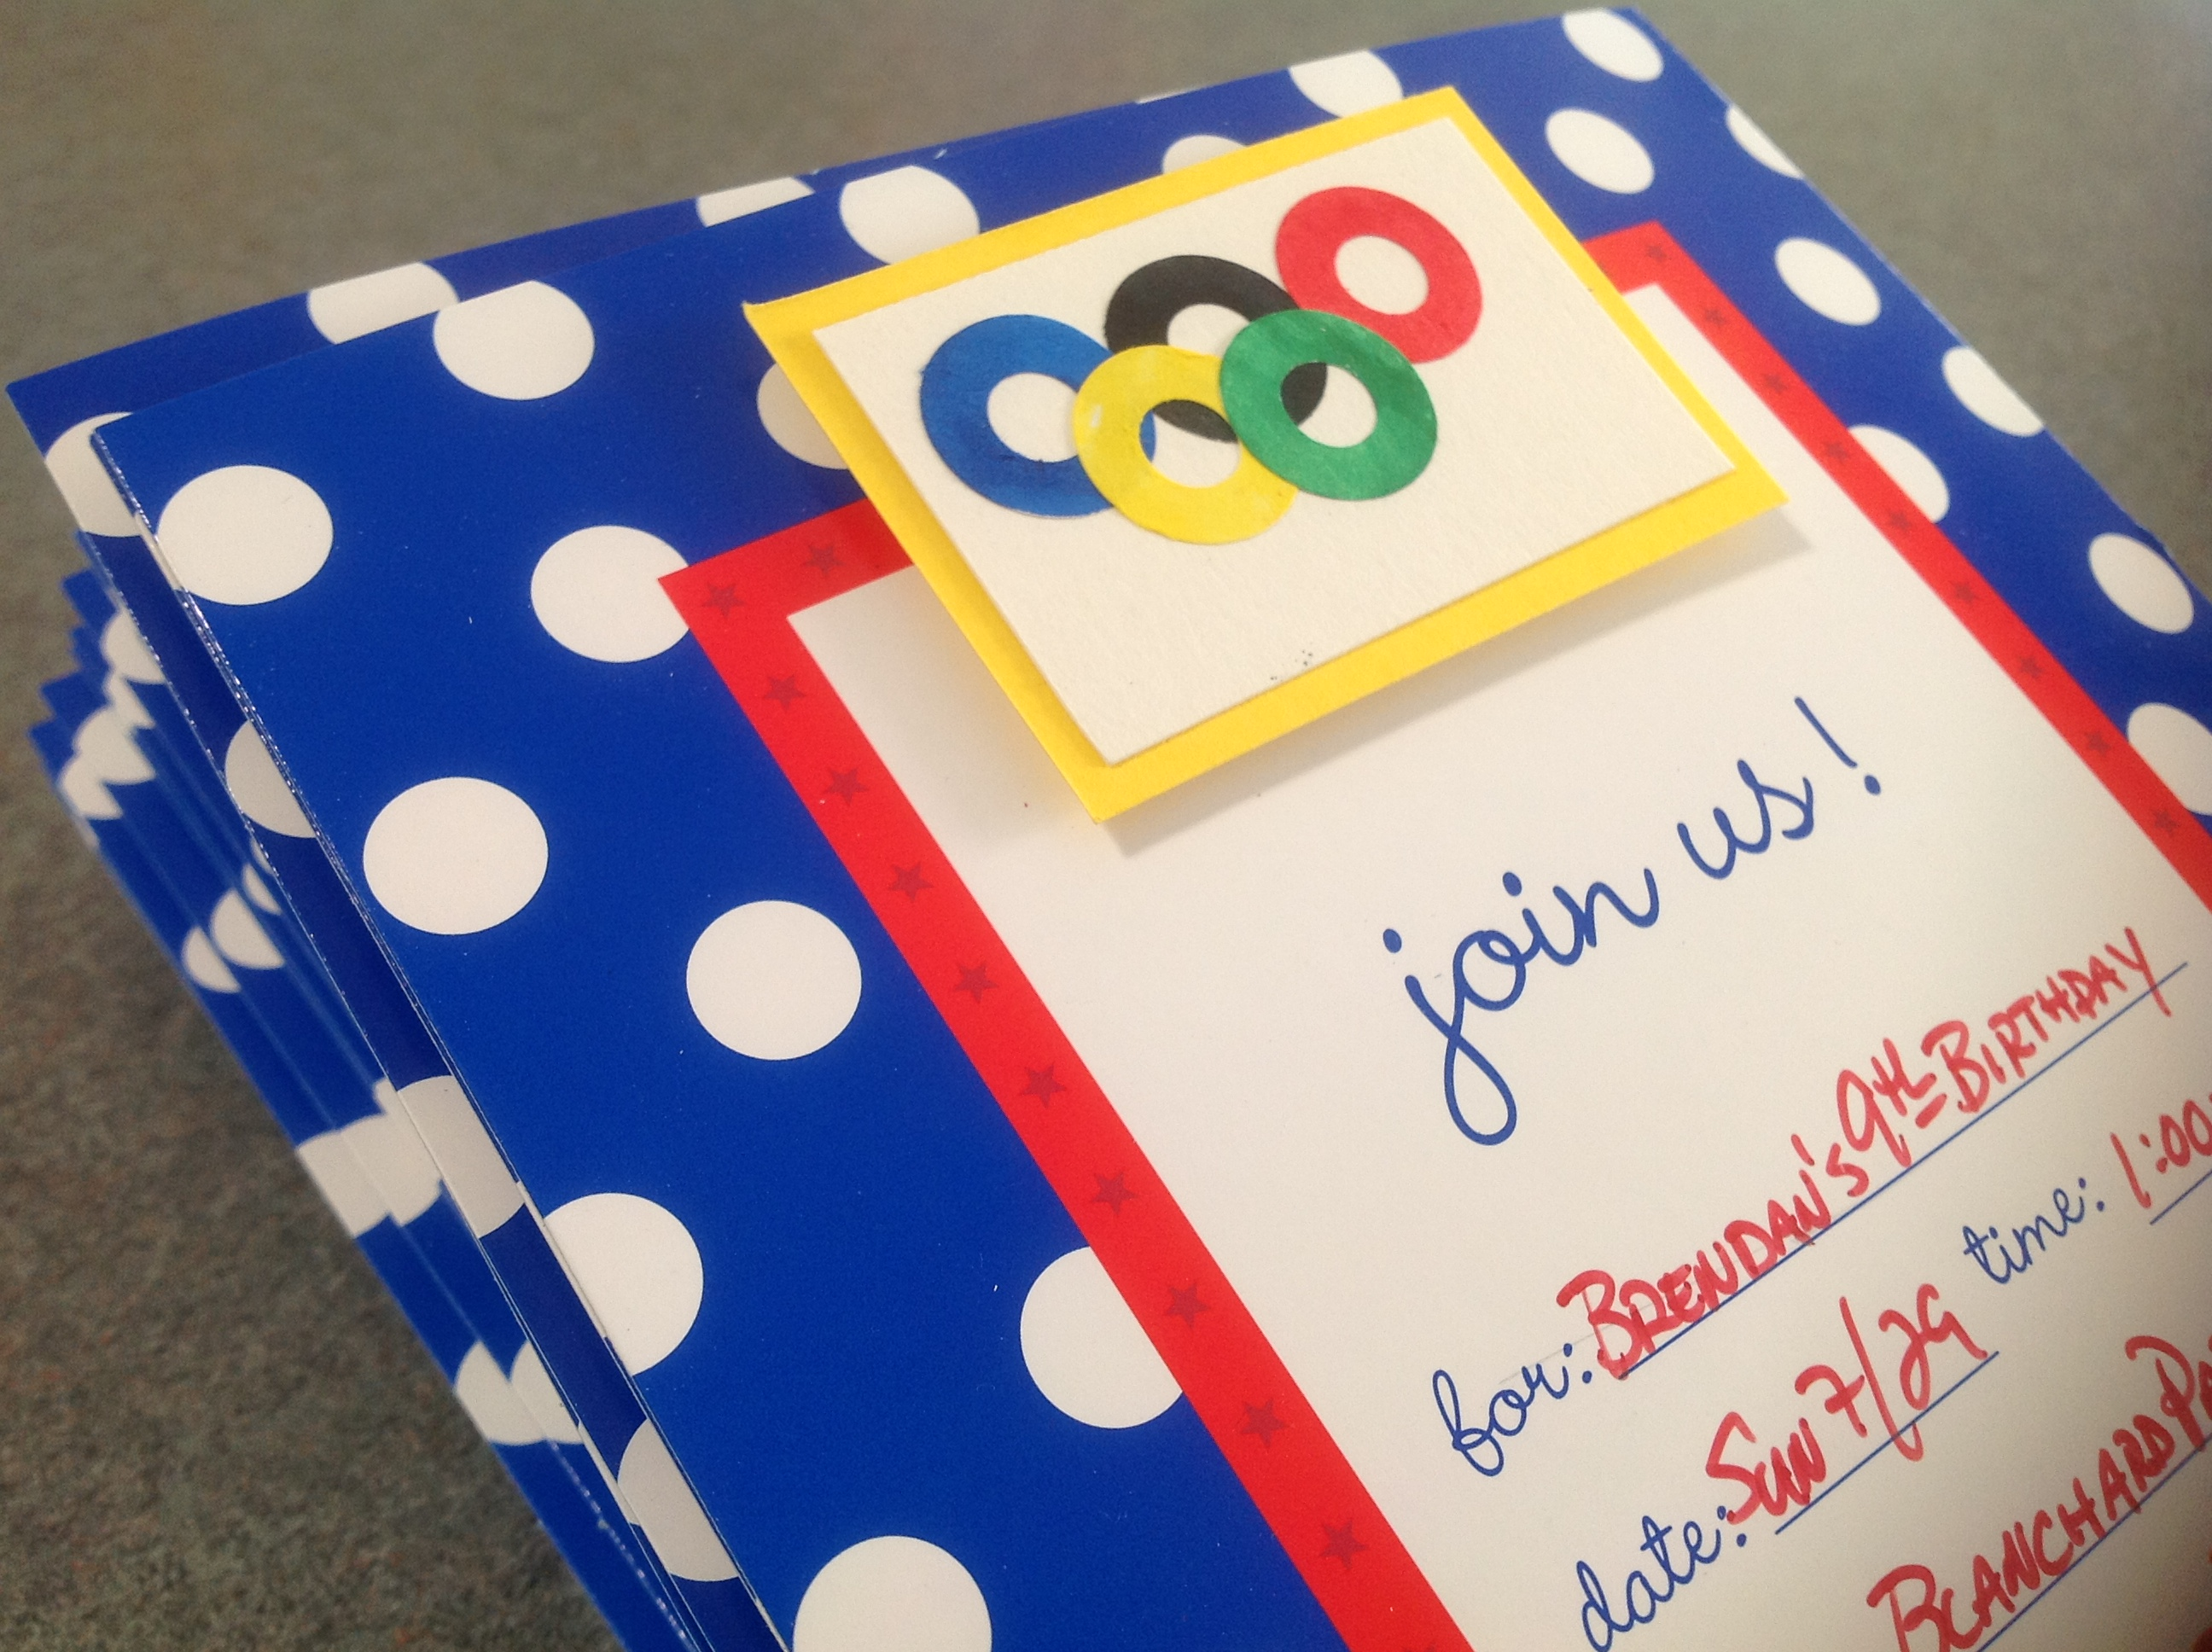 Olympic themed invitations for a birthday party.